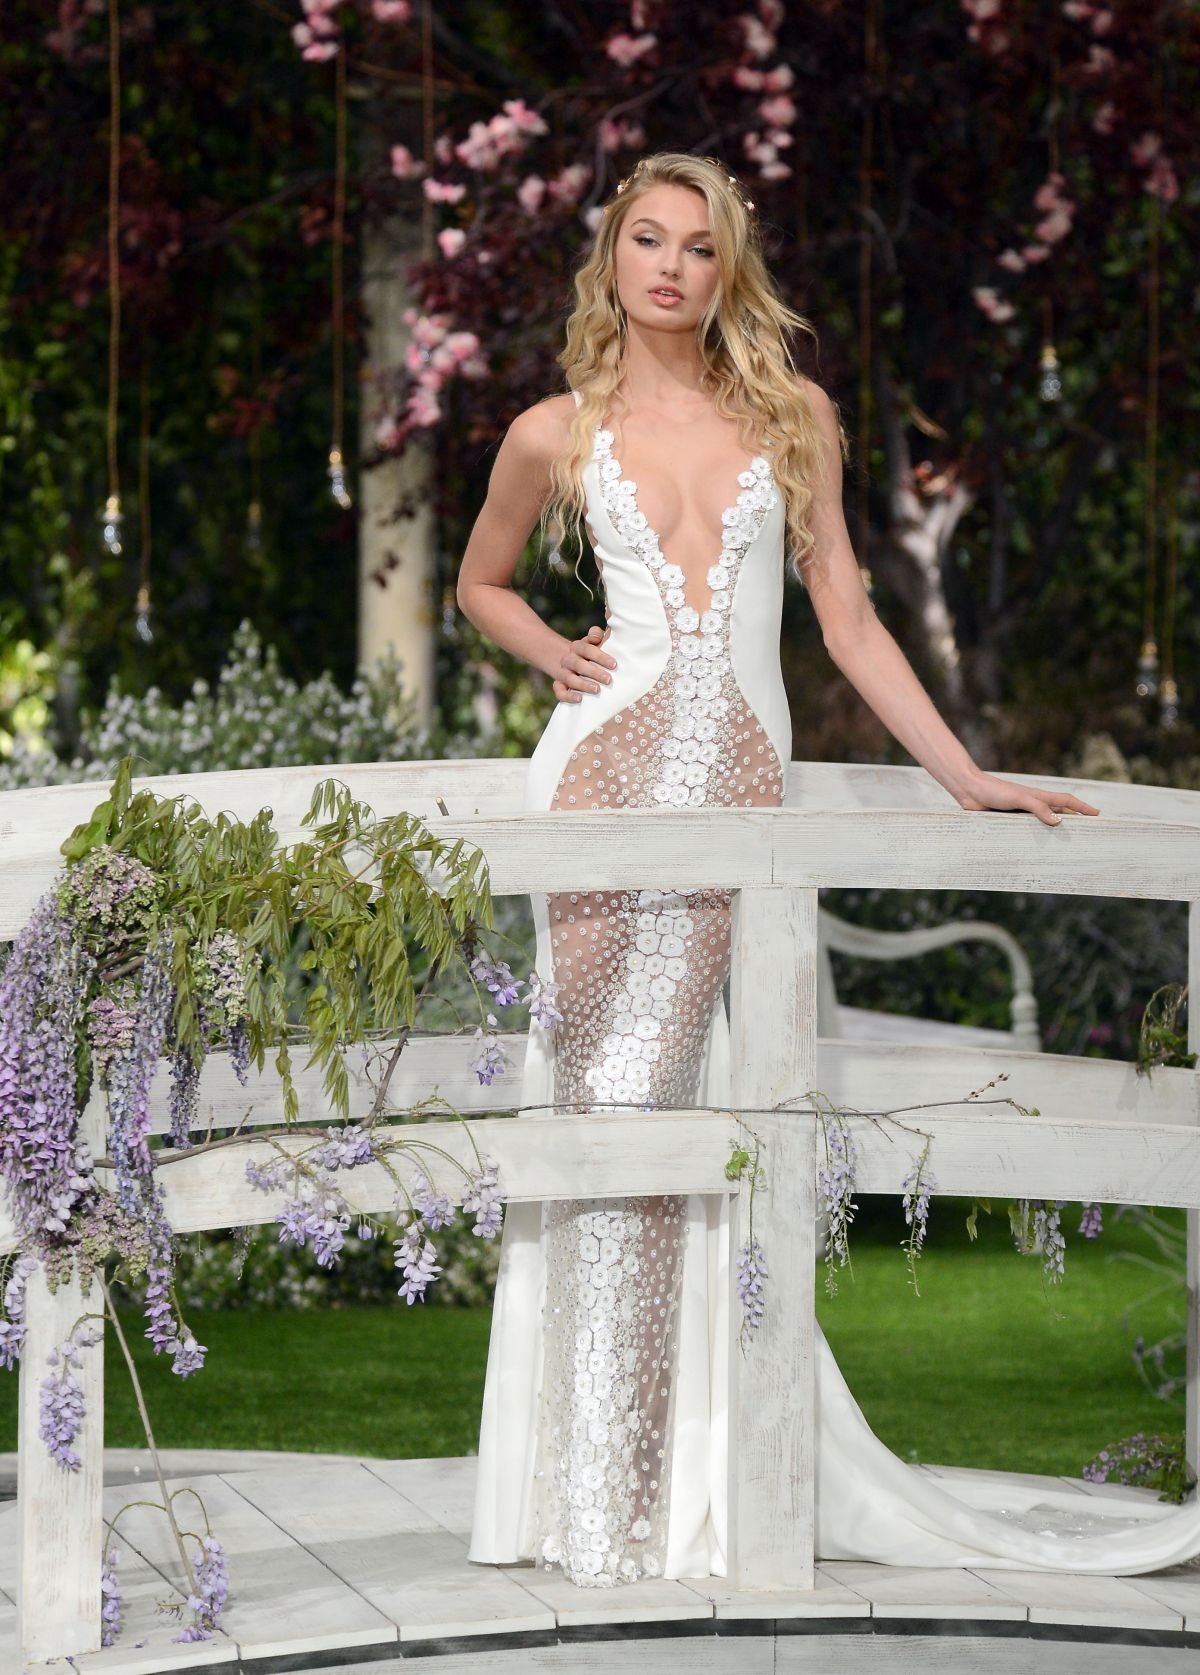 baaa37270a7 Romee Strijd At Rehearsal for Atelier Pronovias 2019 collection – Barcelona